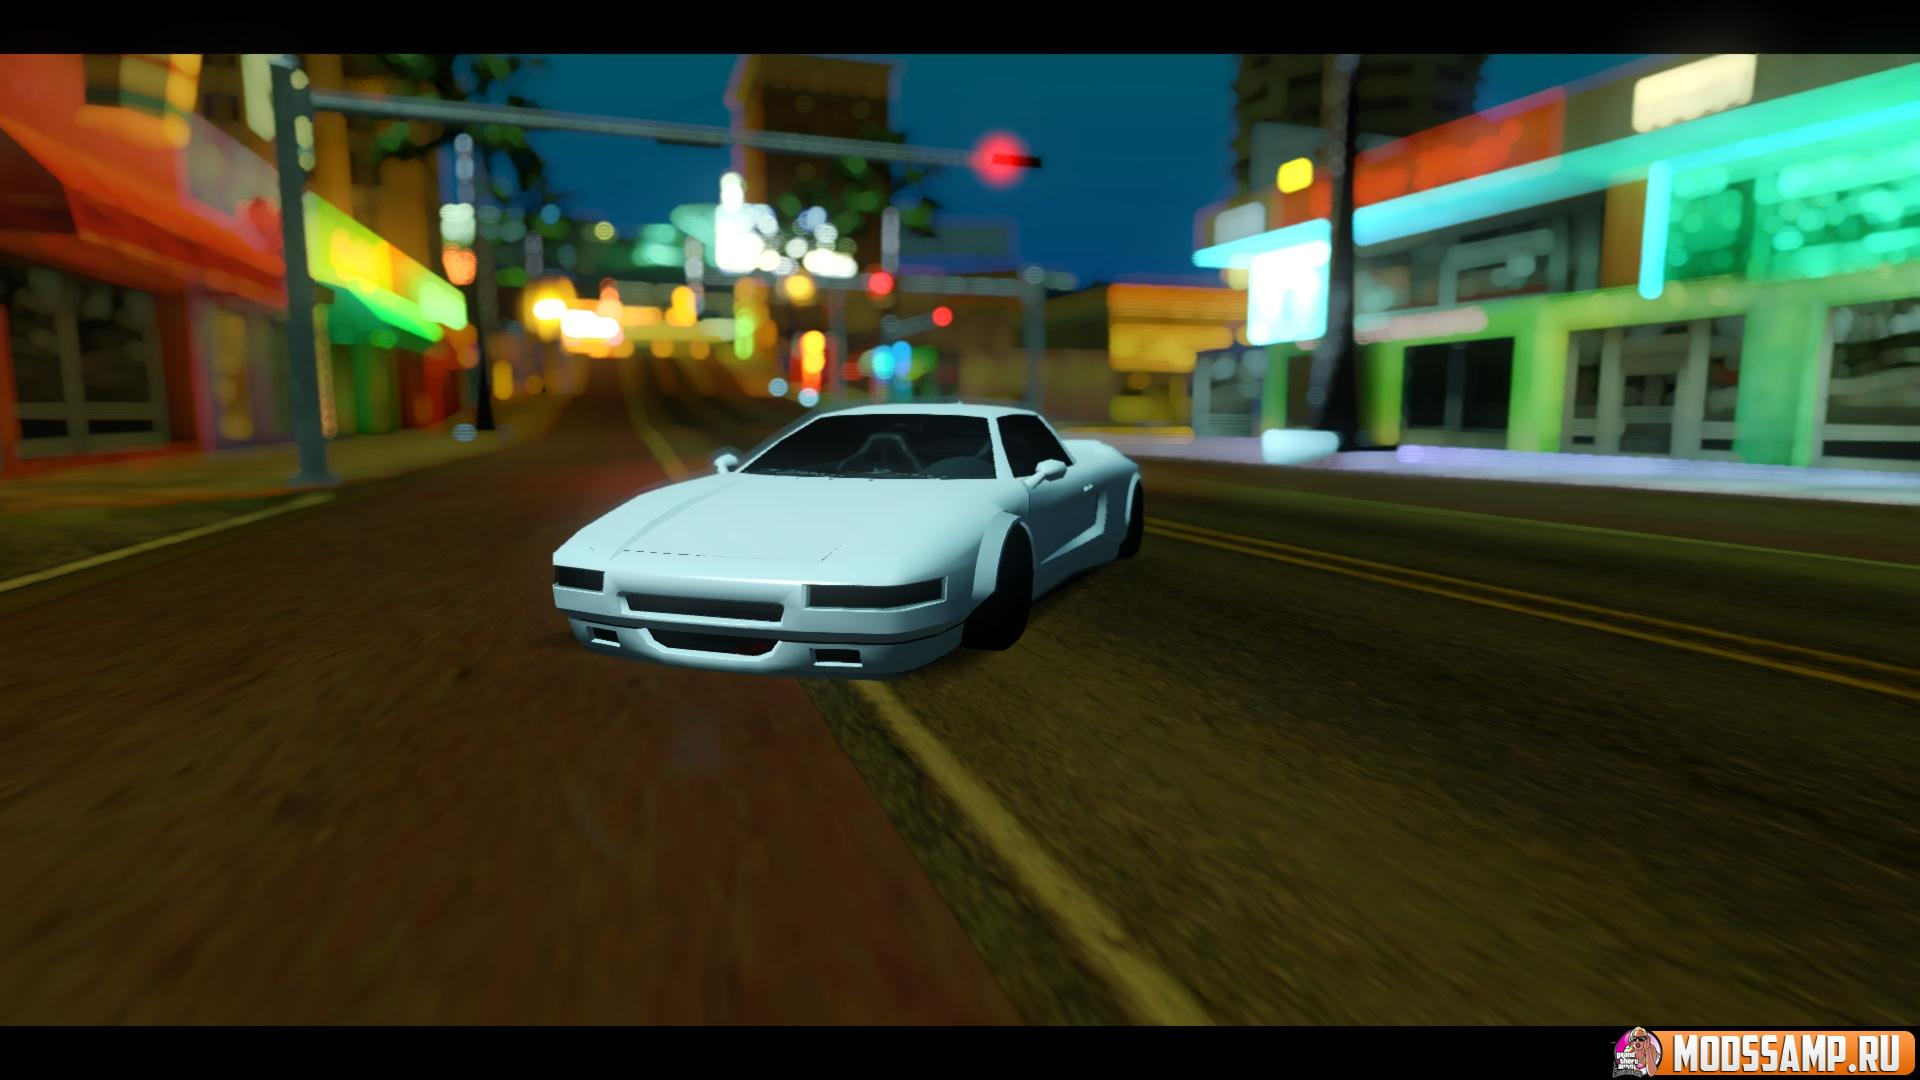 Infernus Rocket Bunny by zveR для GTA:SA